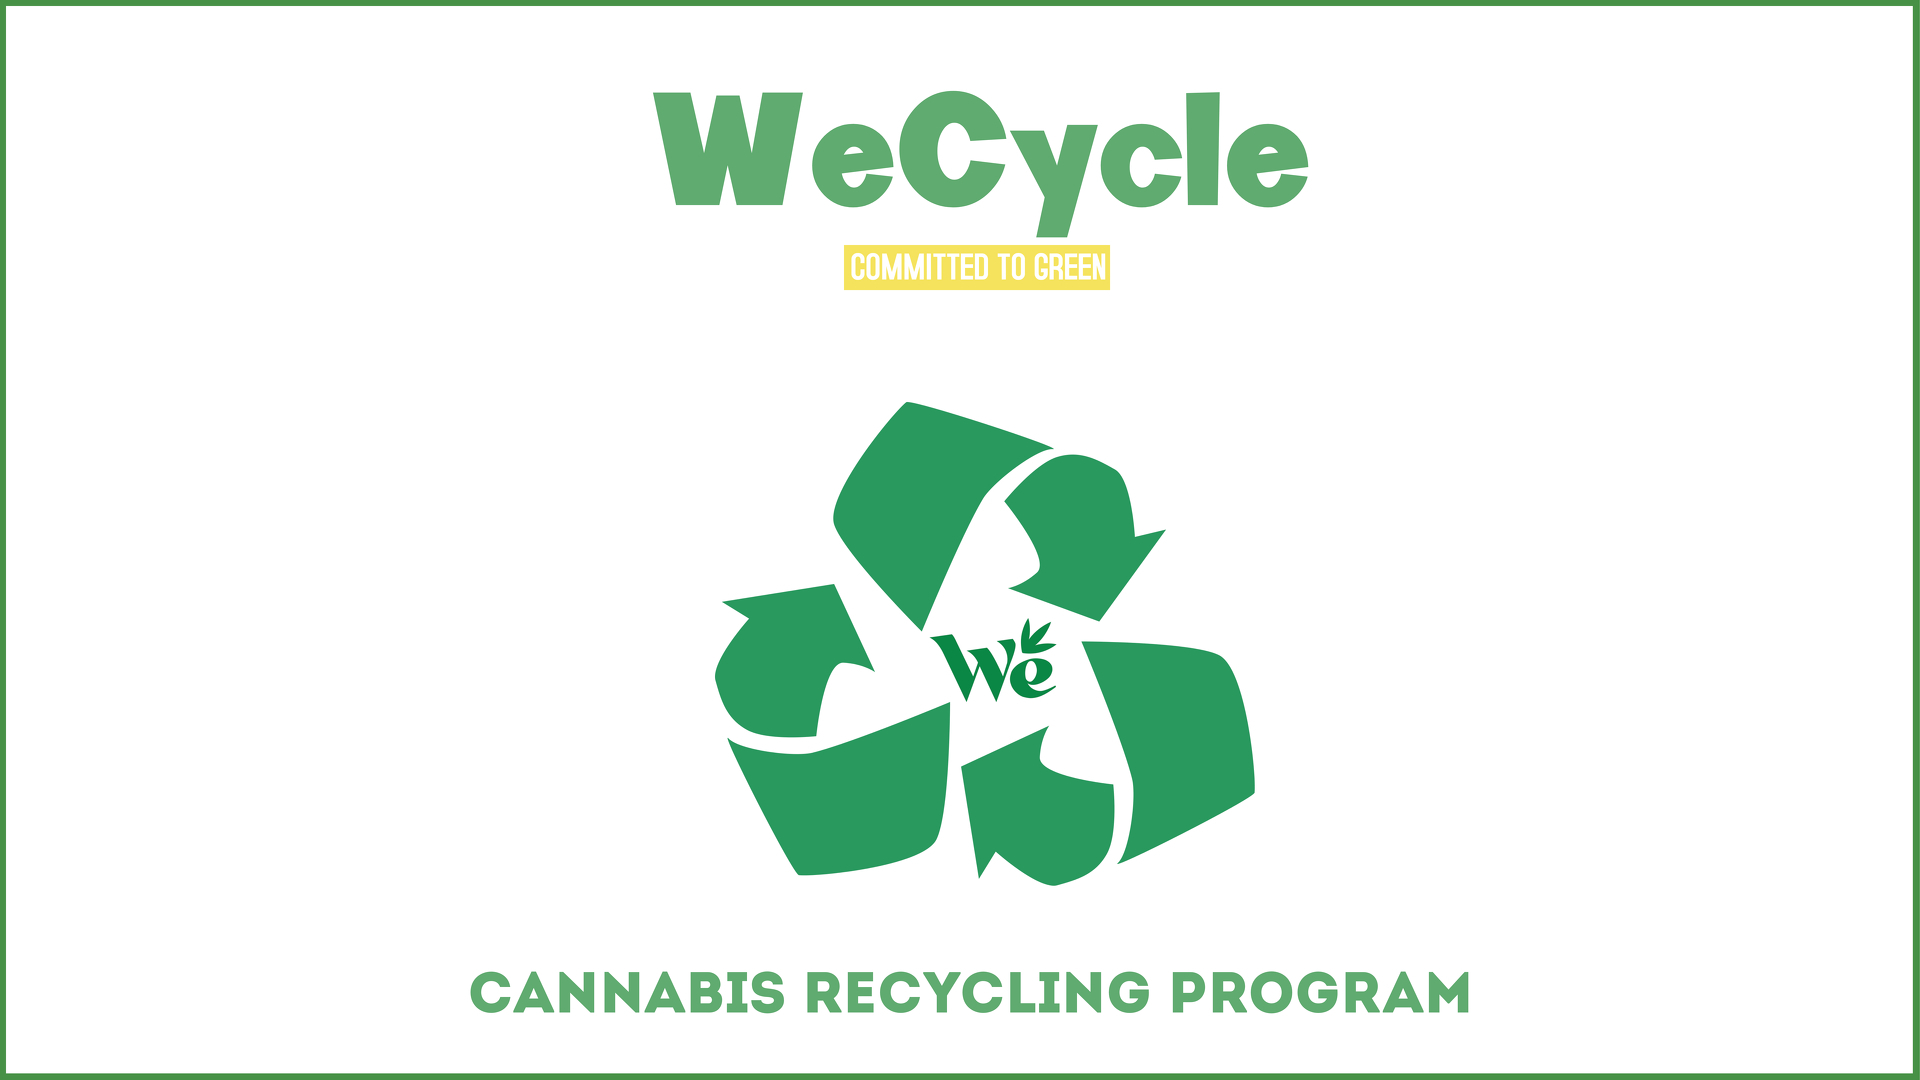 WeCycle - Cannabis Recycling Program